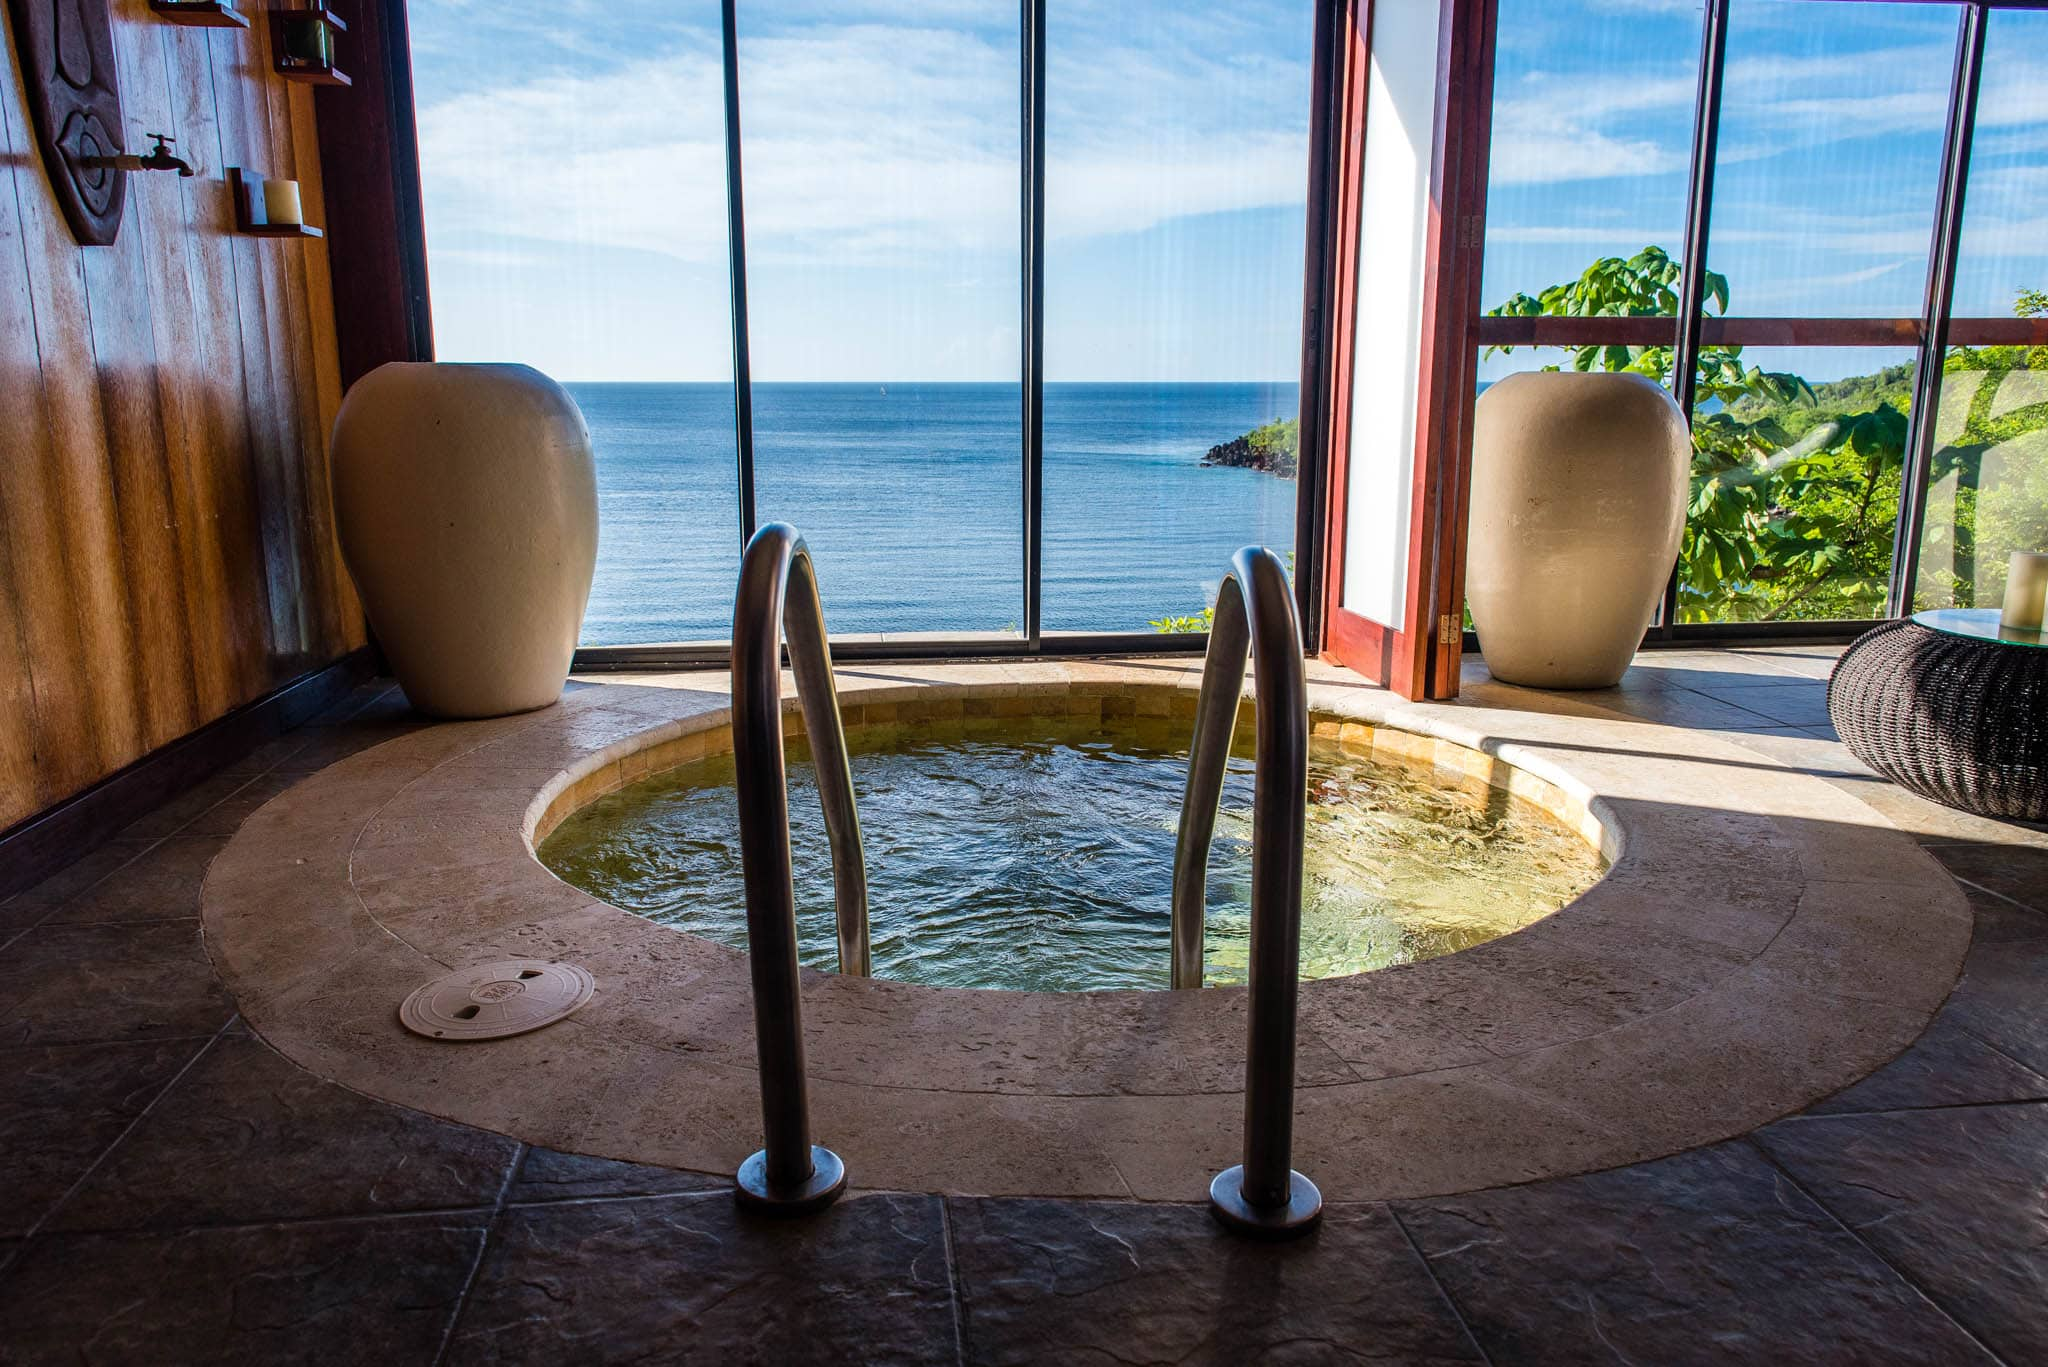 Don't forget to visit the absolutely stunning spa with floor to ceiling windows.